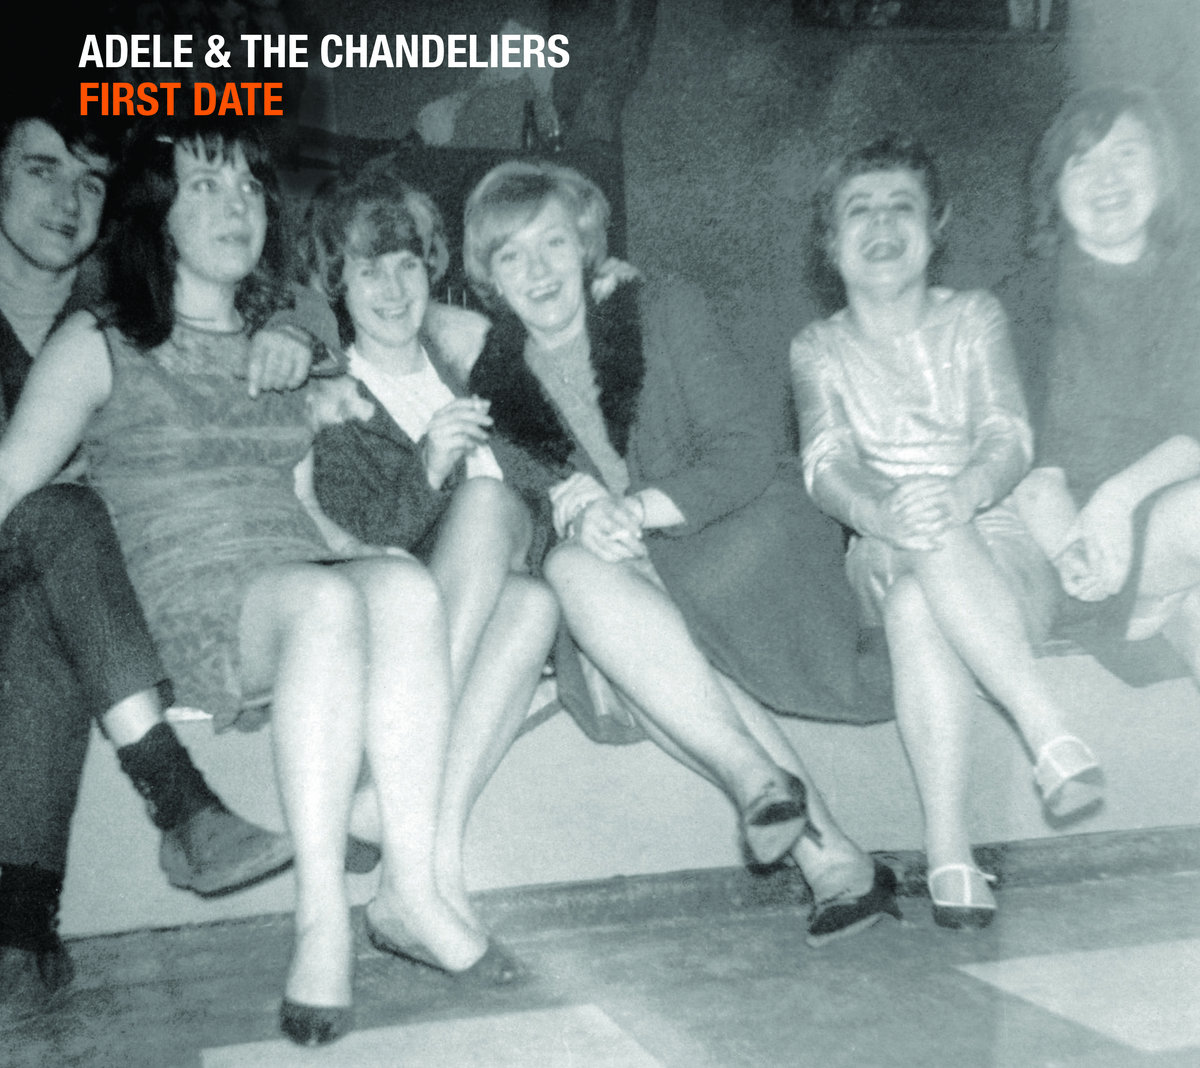 Adele & The Chandeliers - First Date (2021)